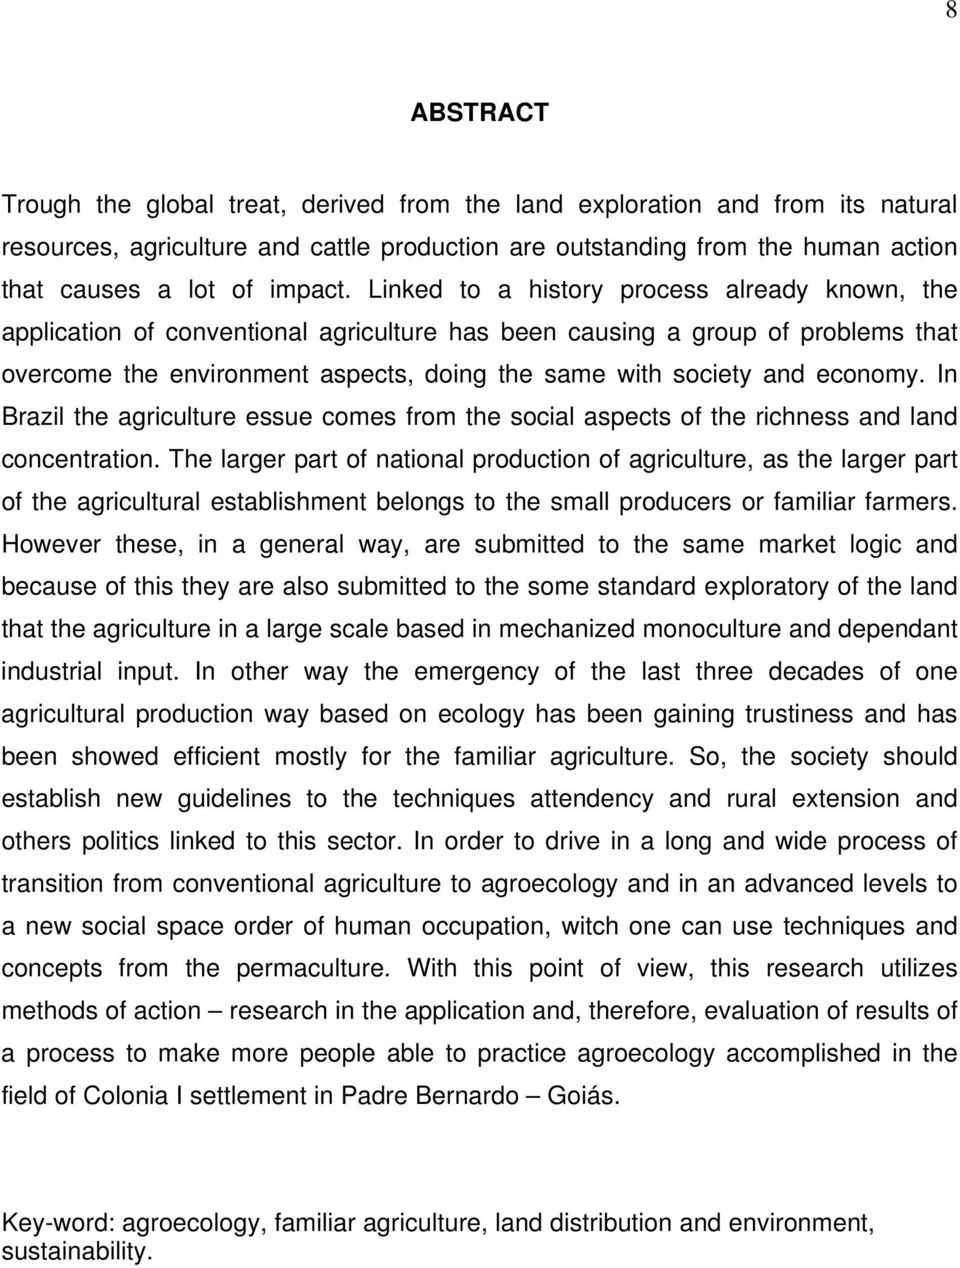 Linked to a history process already known, the application of conventional agriculture has been causing a group of problems that overcome the environment aspects, doing the same with society and